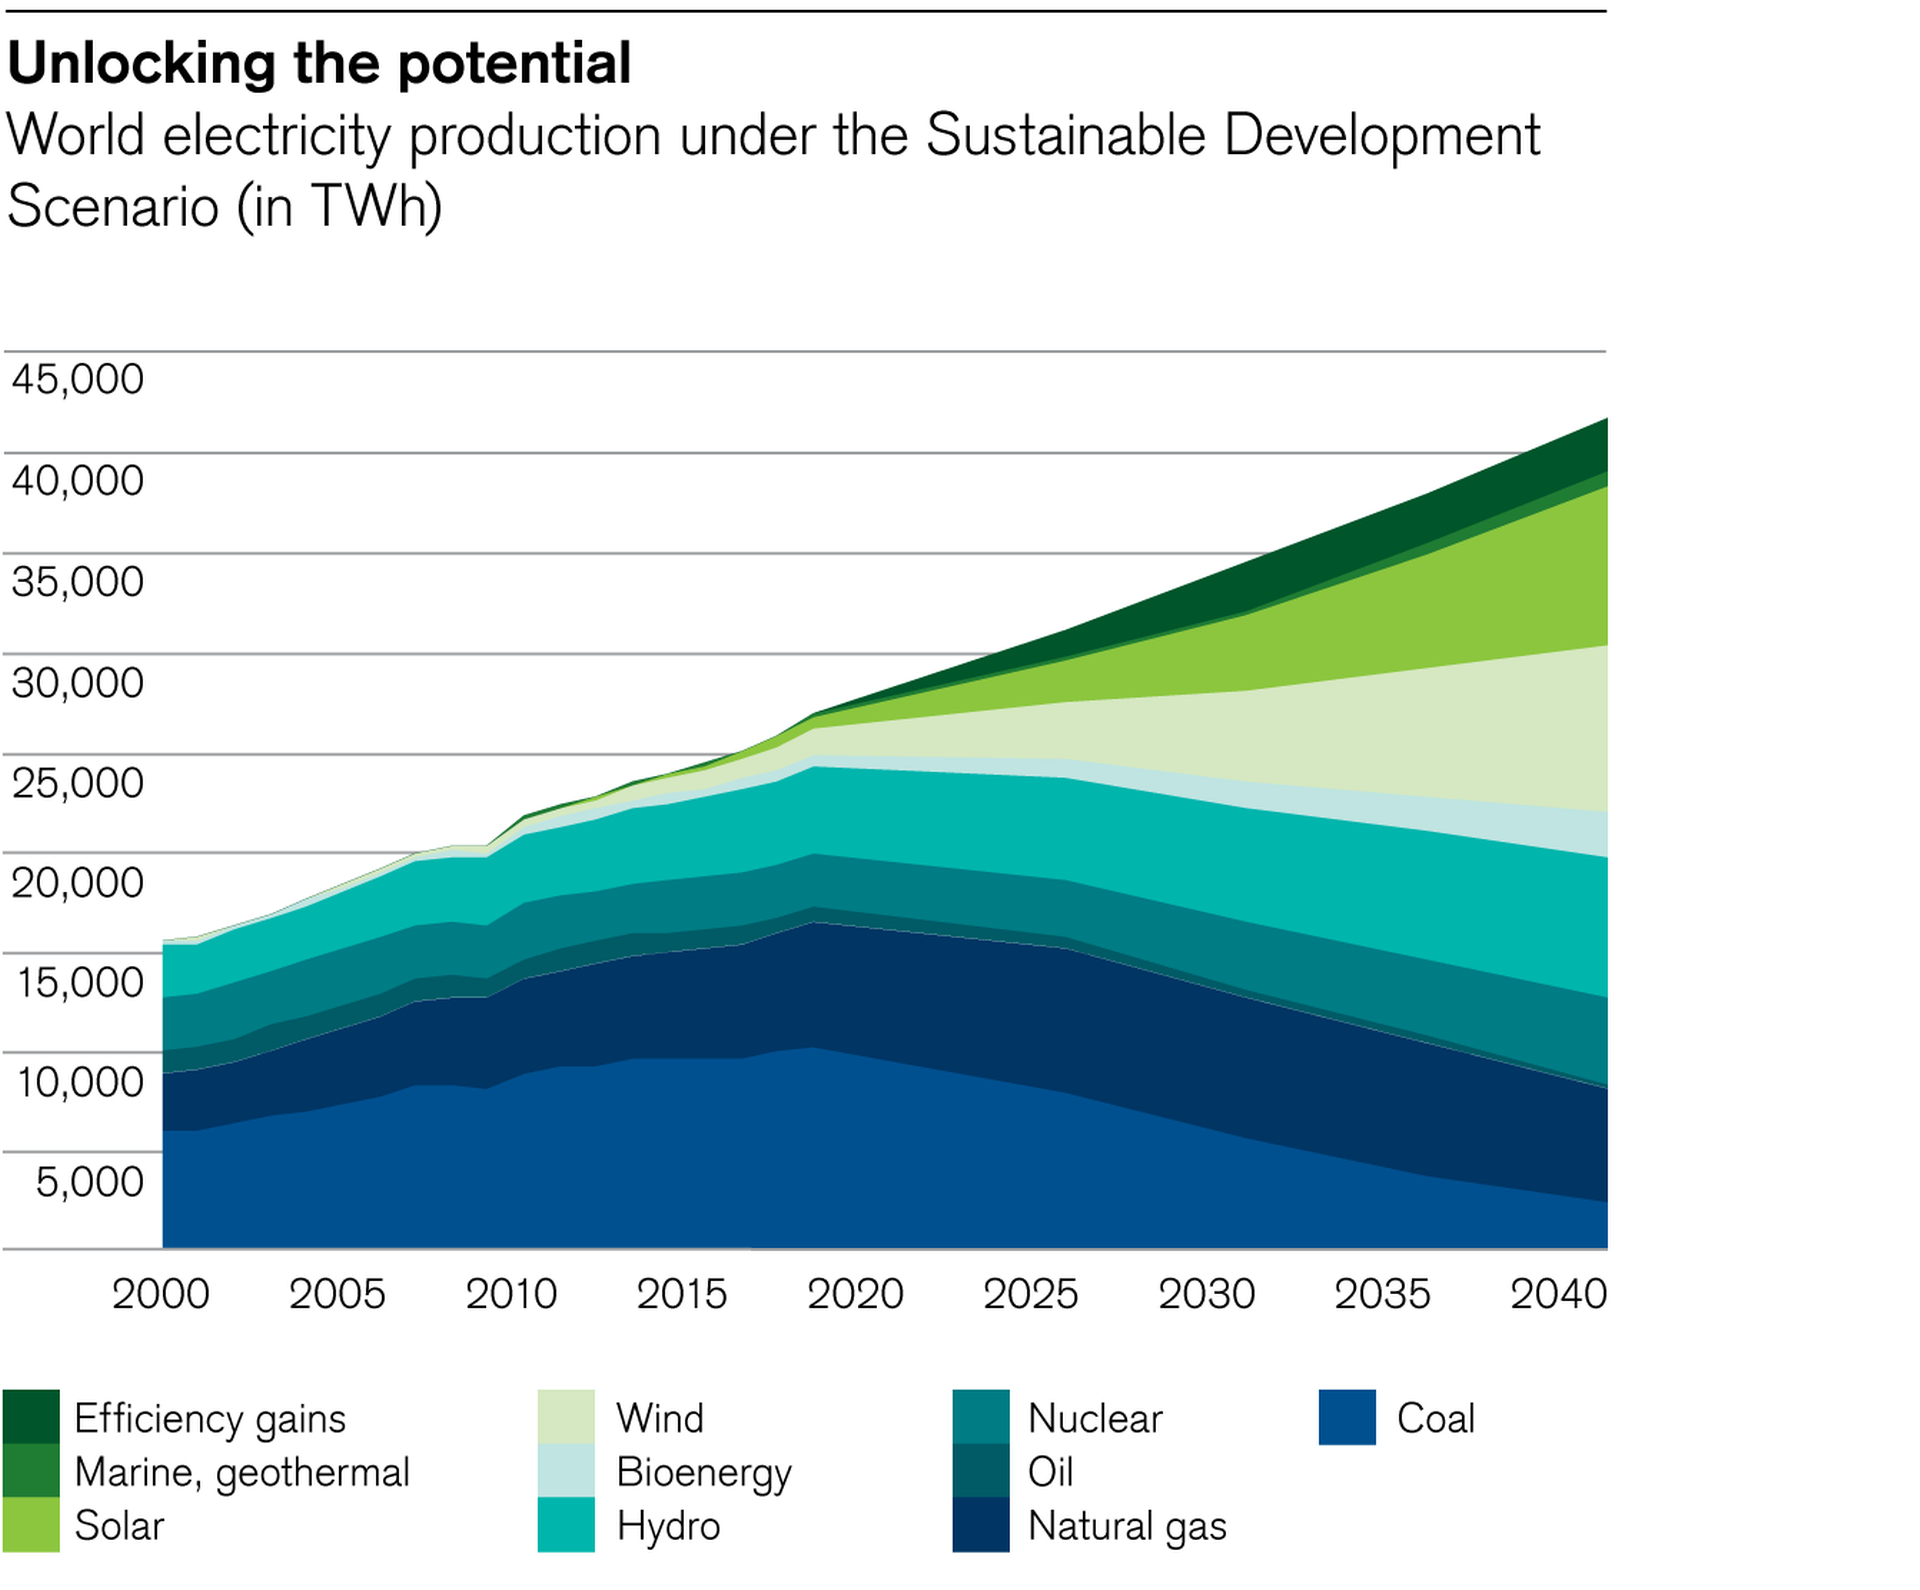 World electricity production under the Sustainable Development Scenario (in TWh)